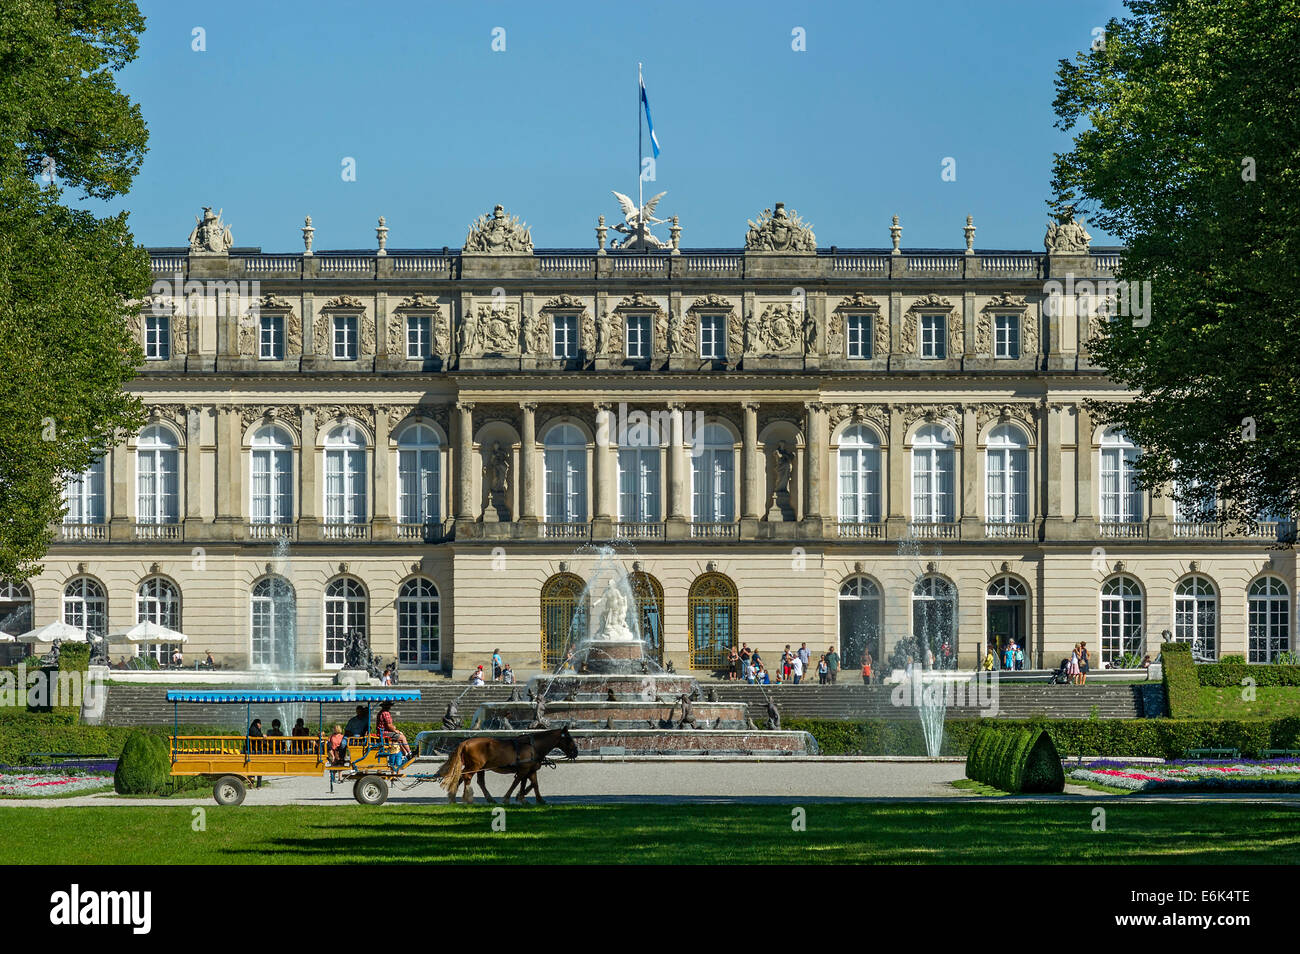 Herrenchiemsee New Palace, Fountain of Latona, Schlosspark palace gardens, Herreninsel island, Chiemsee lake, Chiemgau - Stock Image